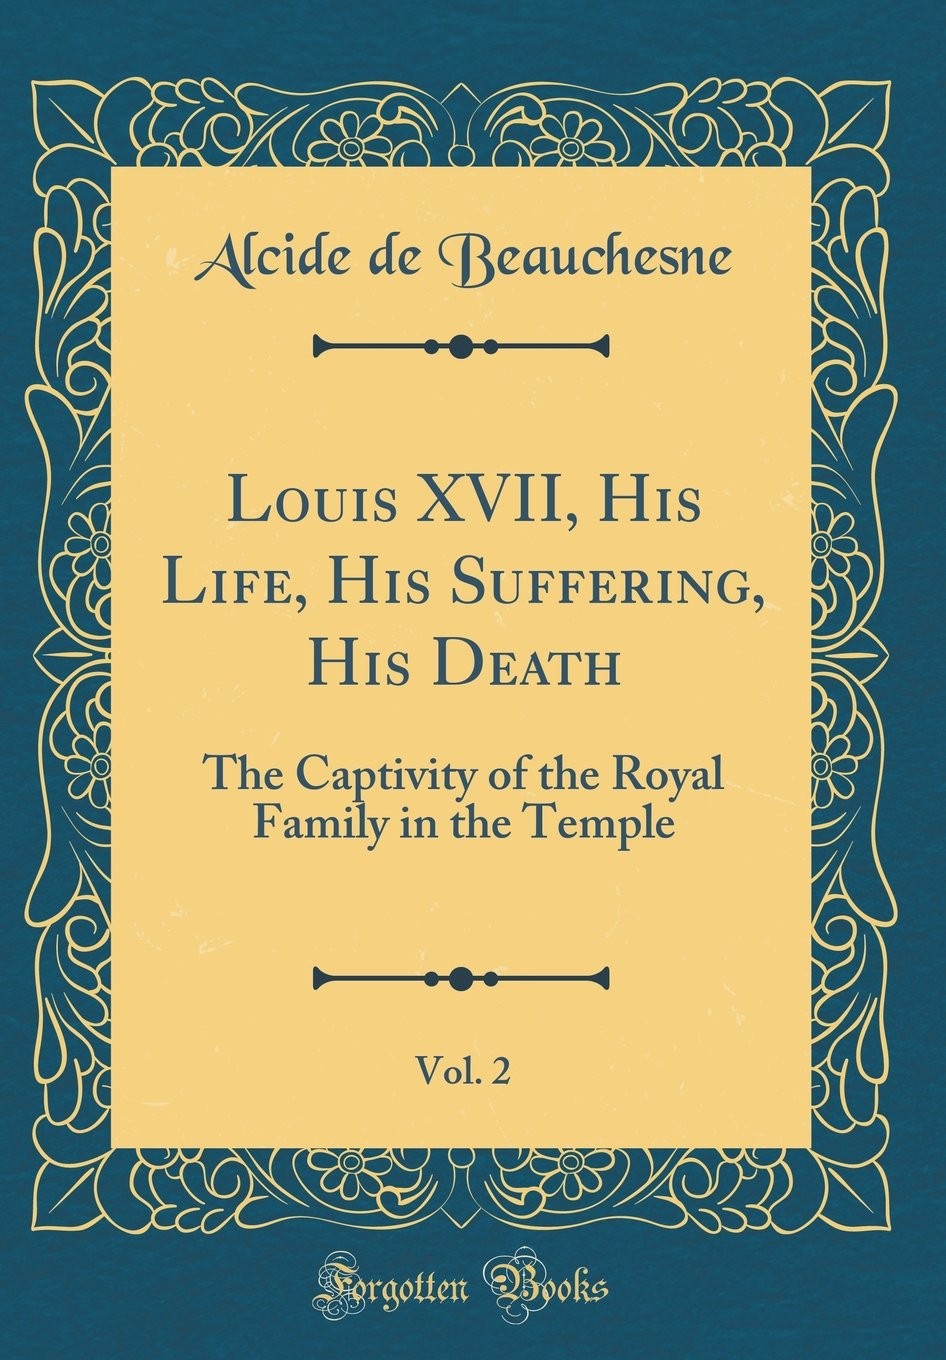 Louis XVII, His Life, His Suffering, His Death, Vol  2: The